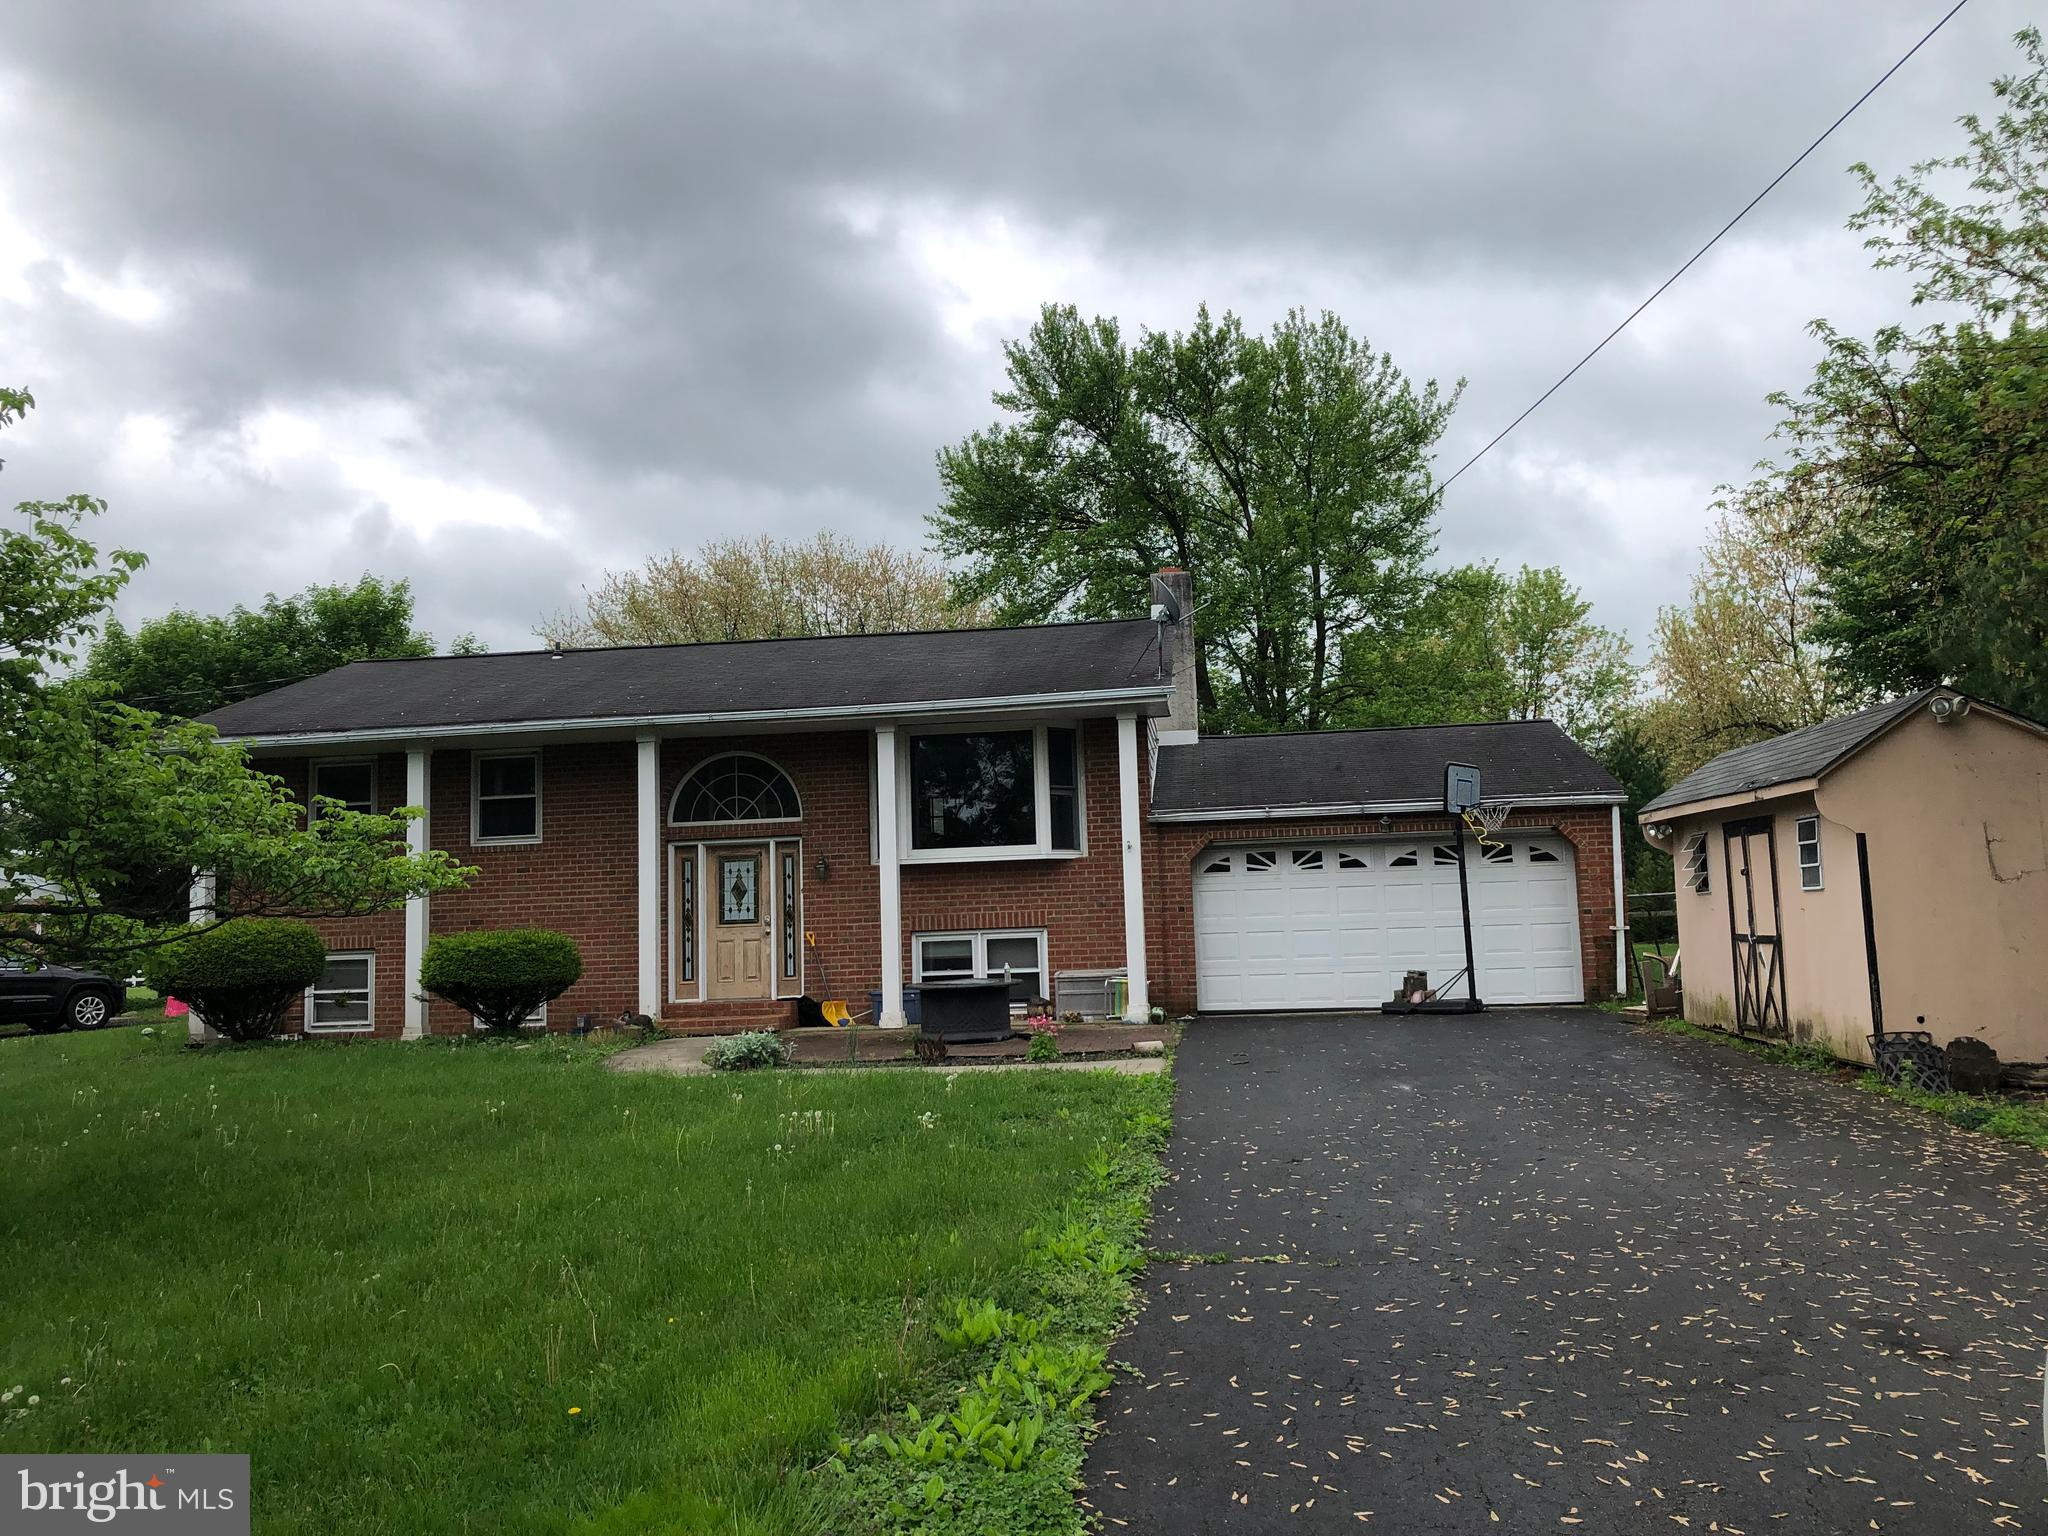 160 W 2ND STREET, RED HILL, PA 18076